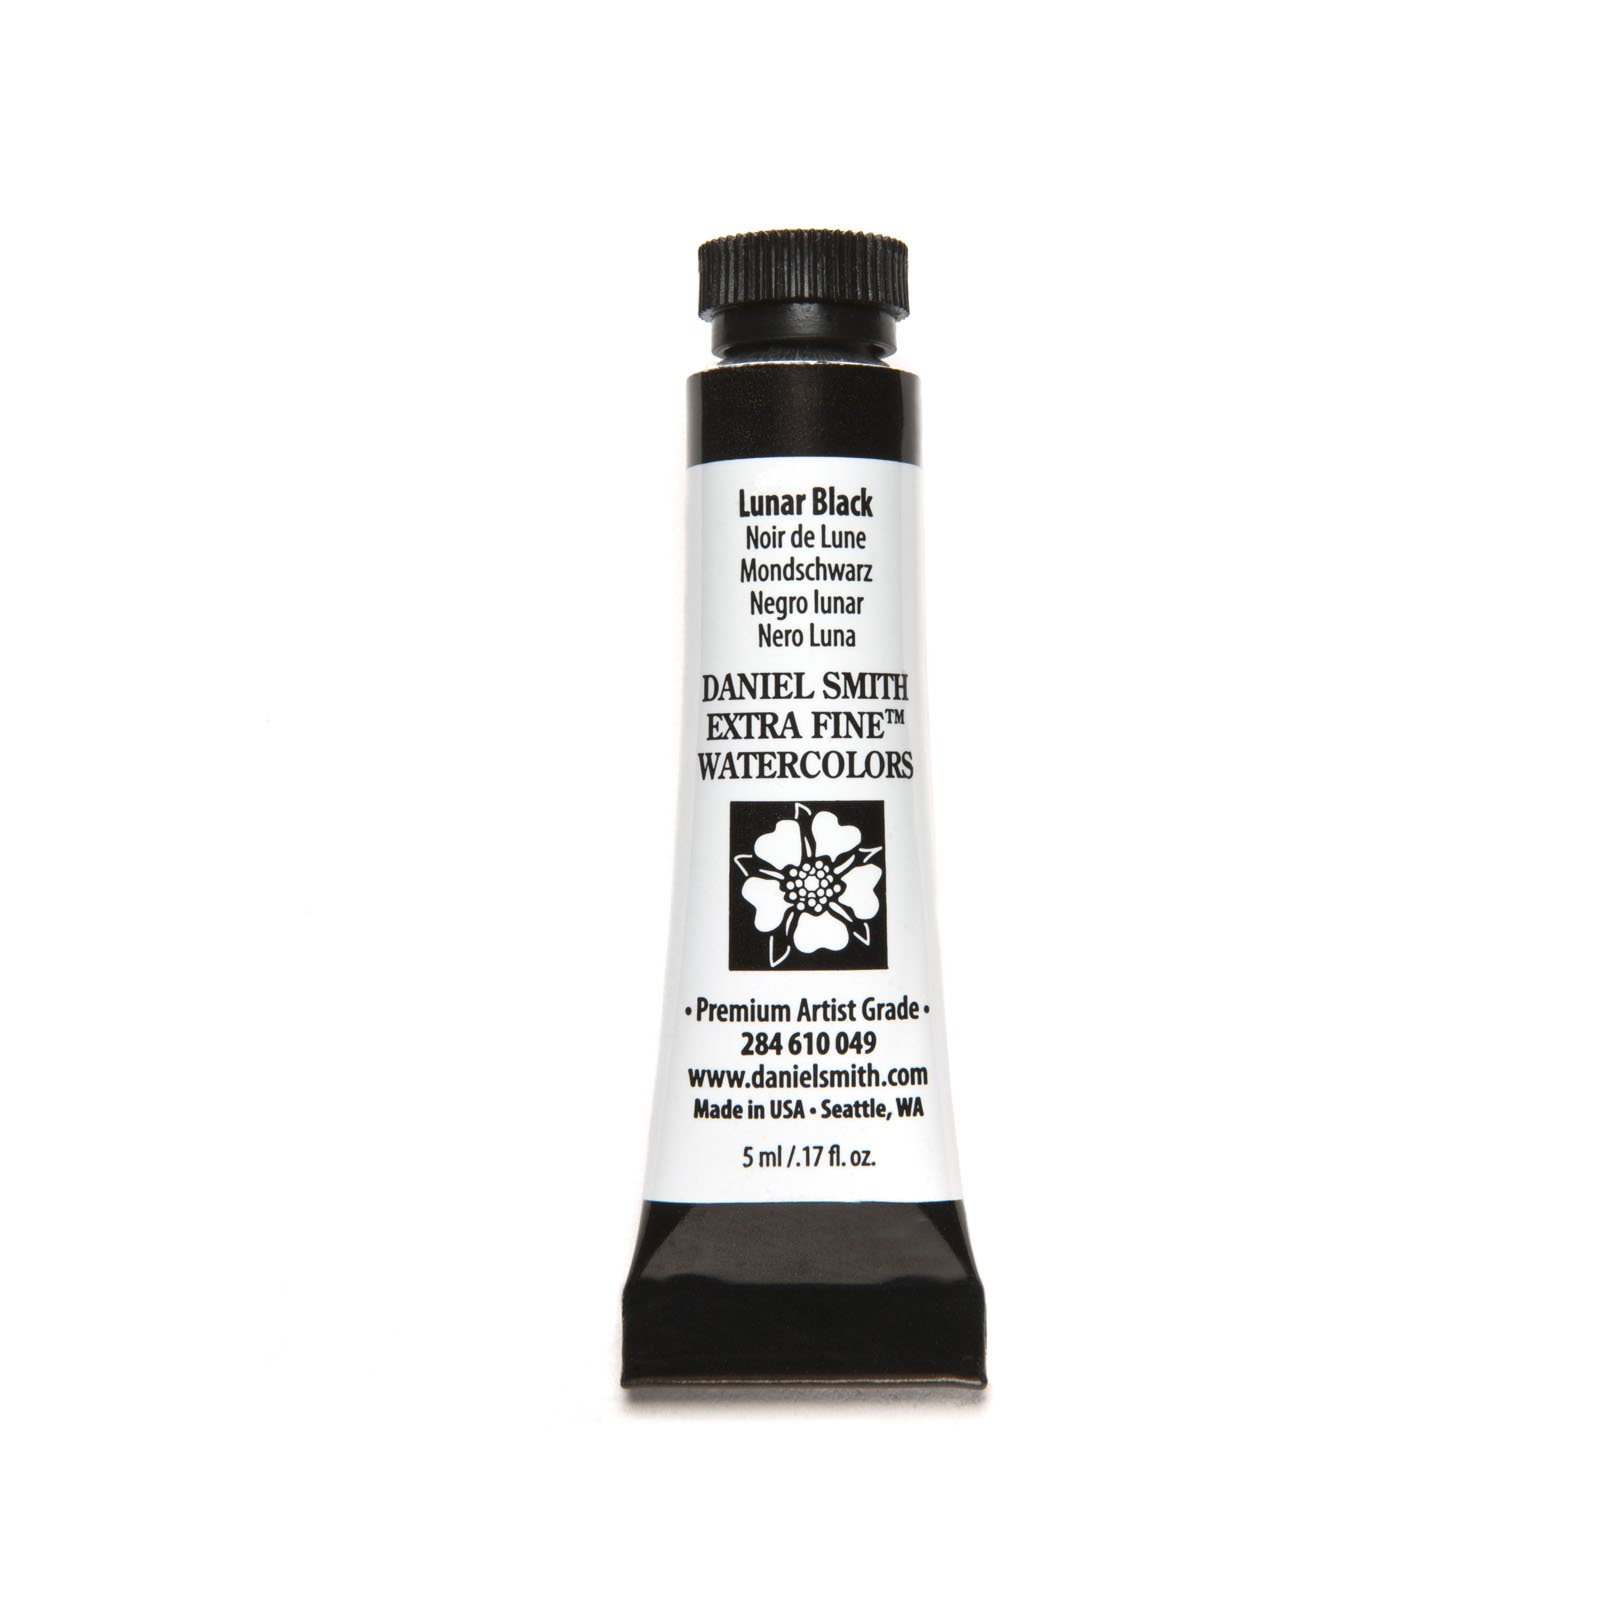 Daniel Smith 284610049 Extra Fine Watercolors Tube, 5ml, Lunar Black